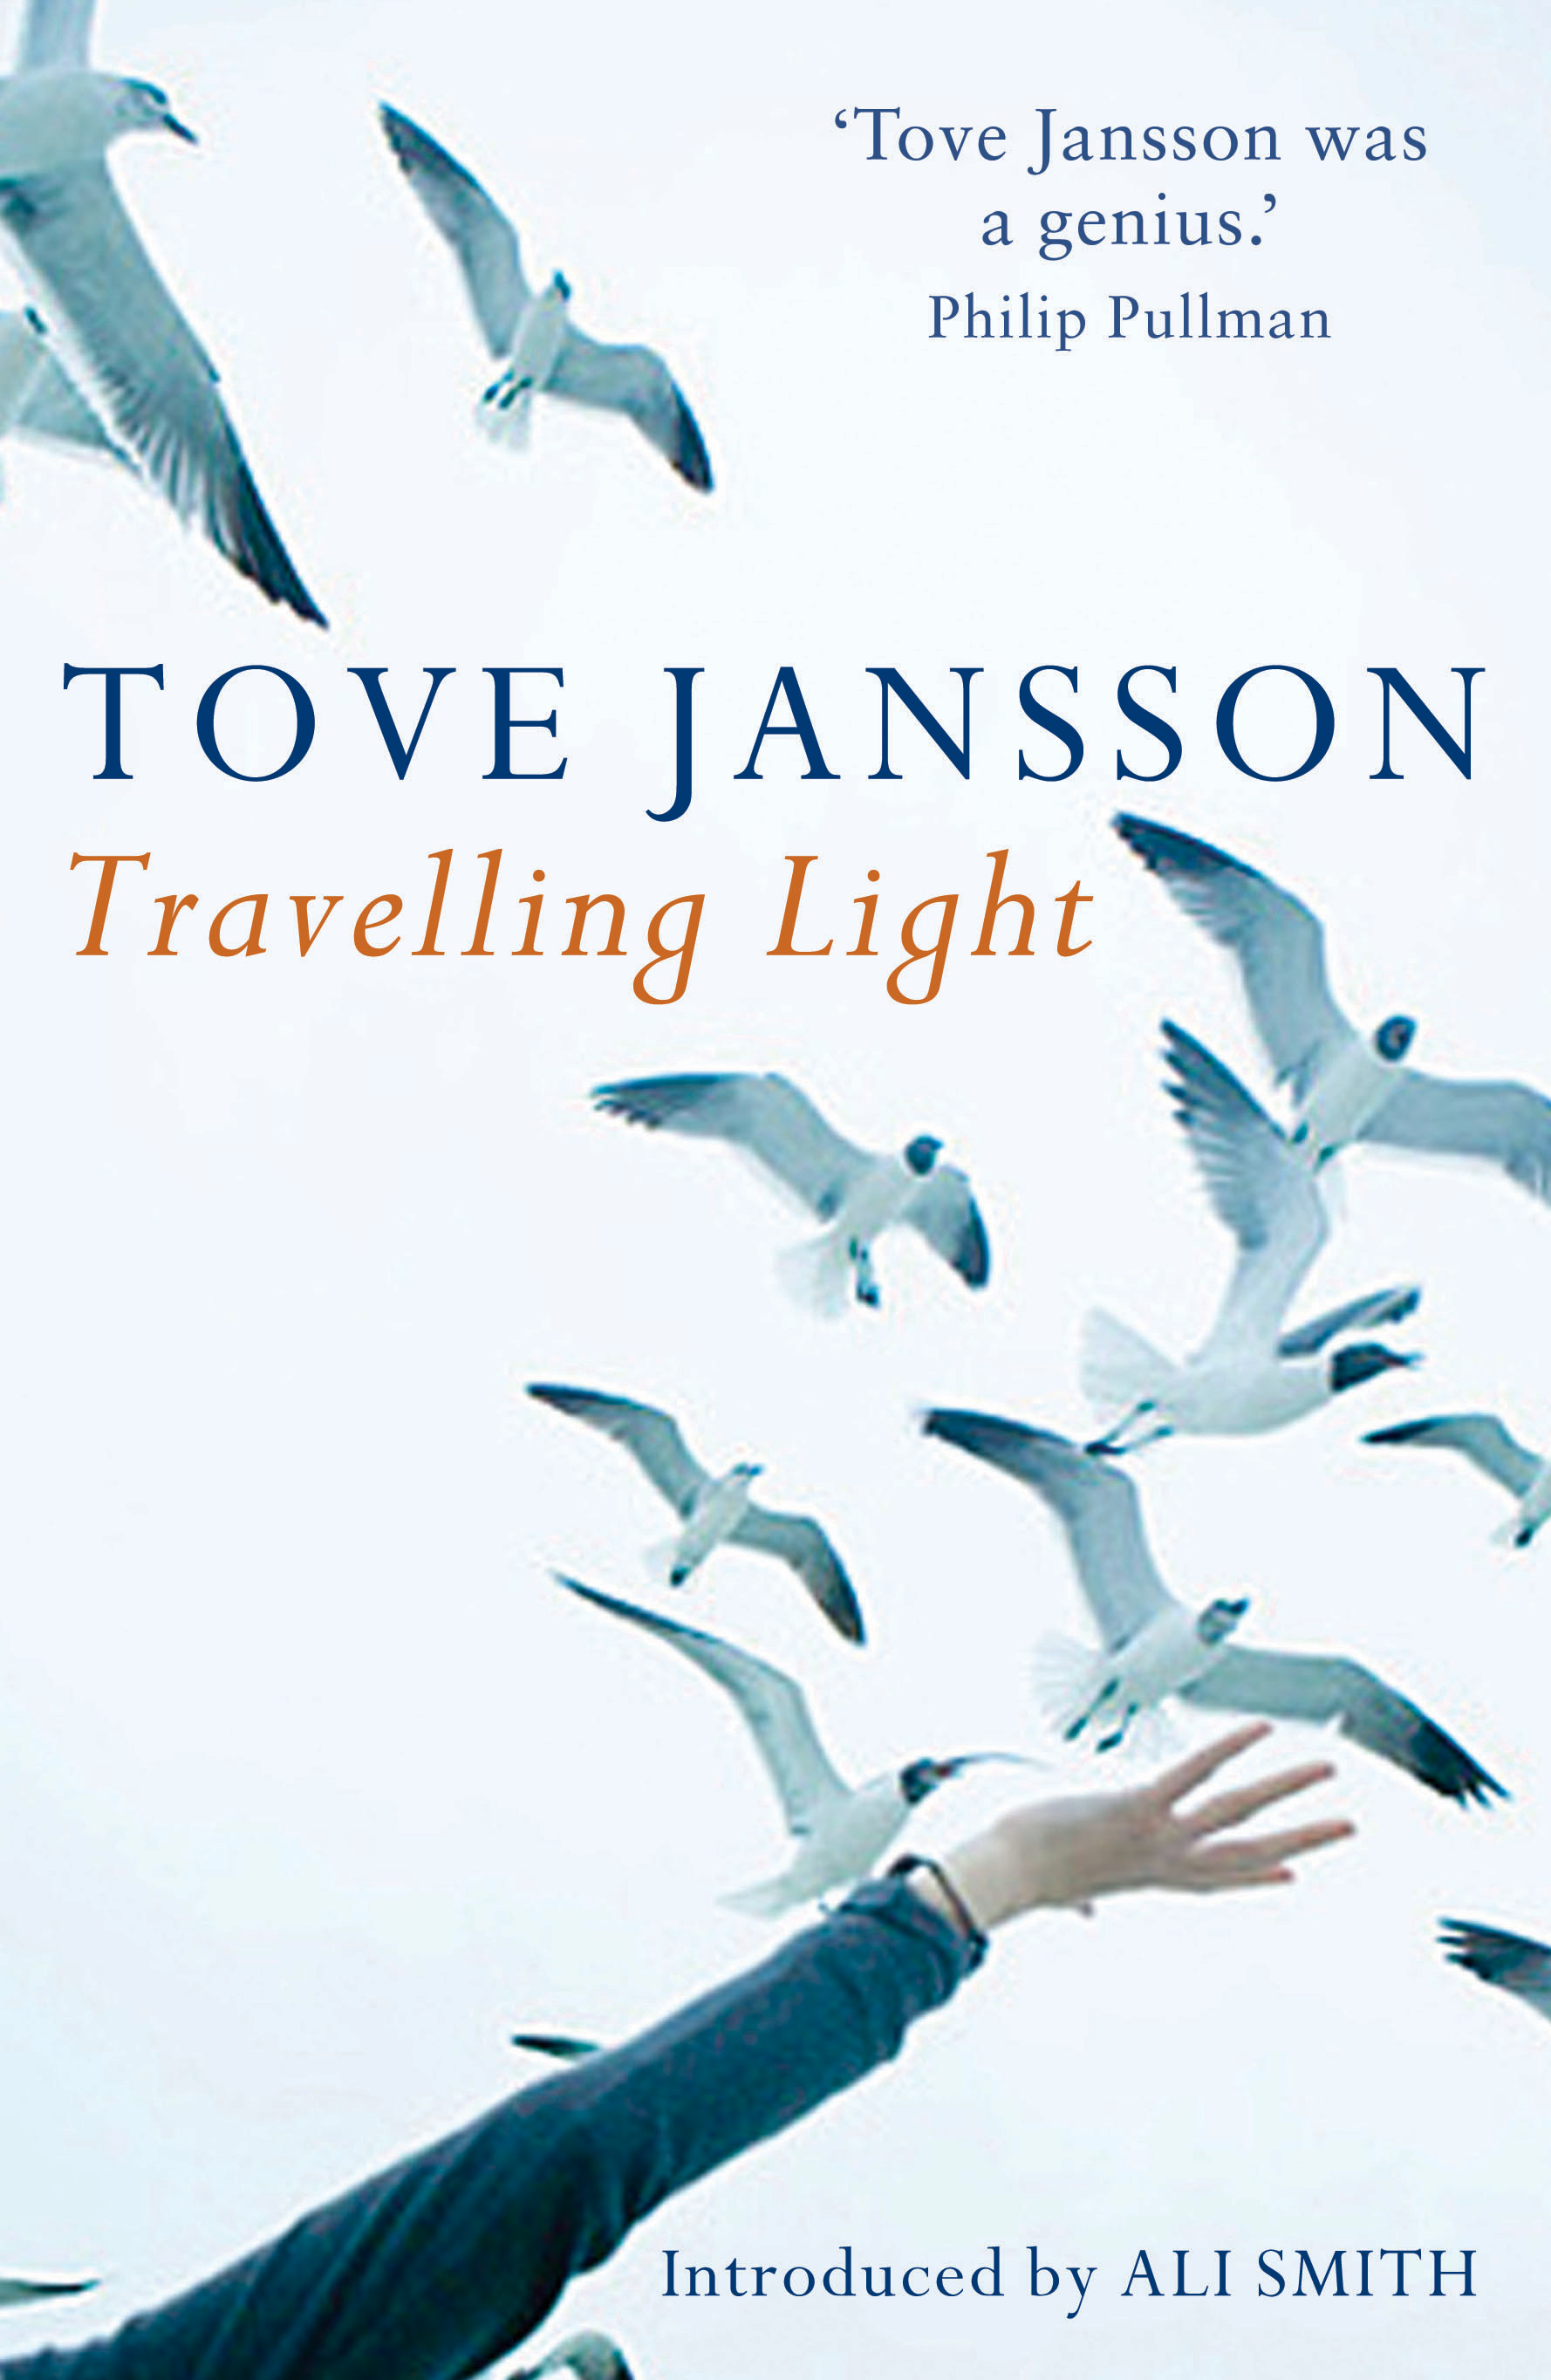 Tove-Jansson-Travelling-Light-Sort-of-Books.jpg